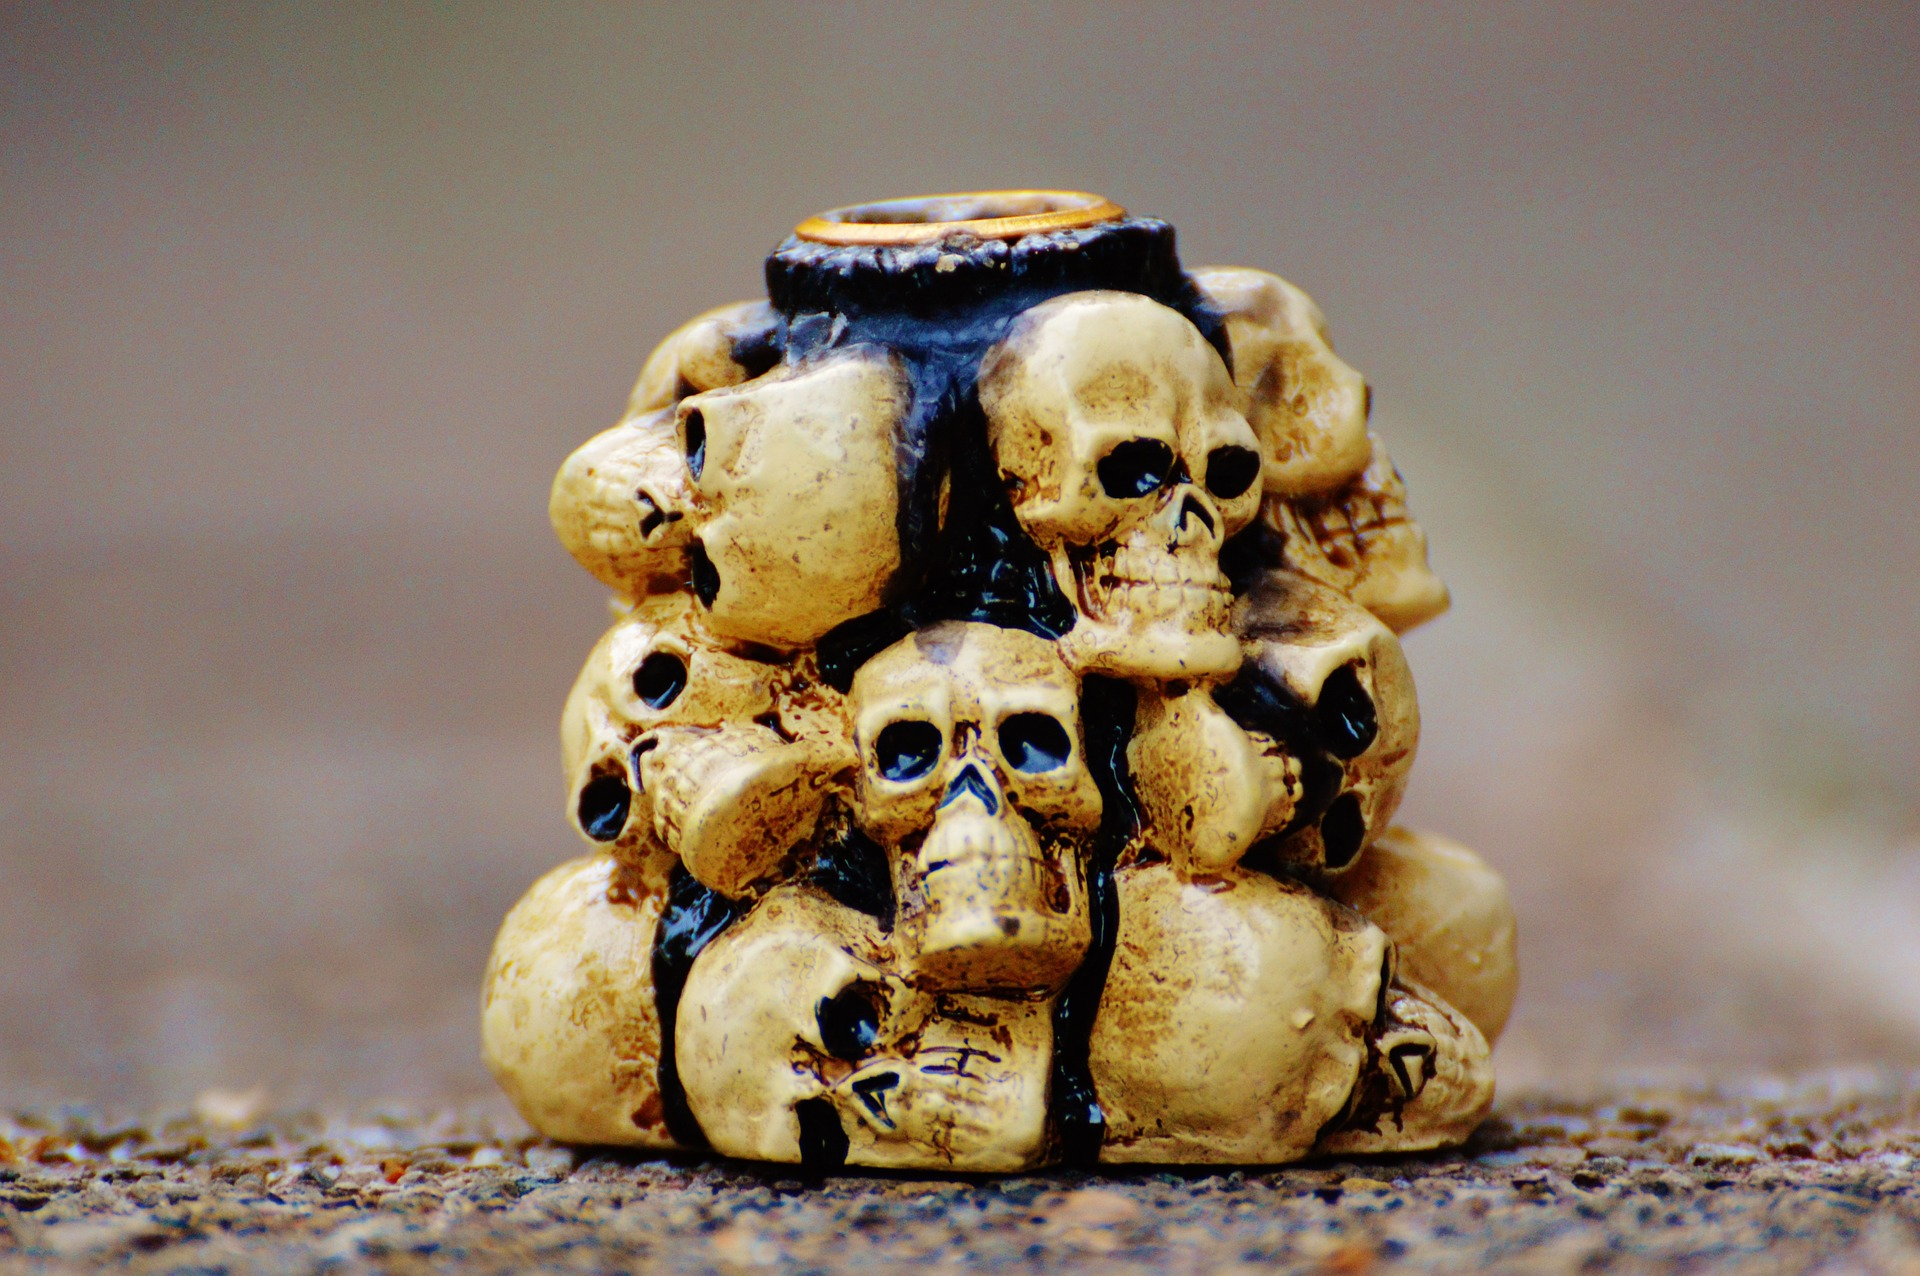 The Significance Of Skulls In Art Around The World Wanderarti